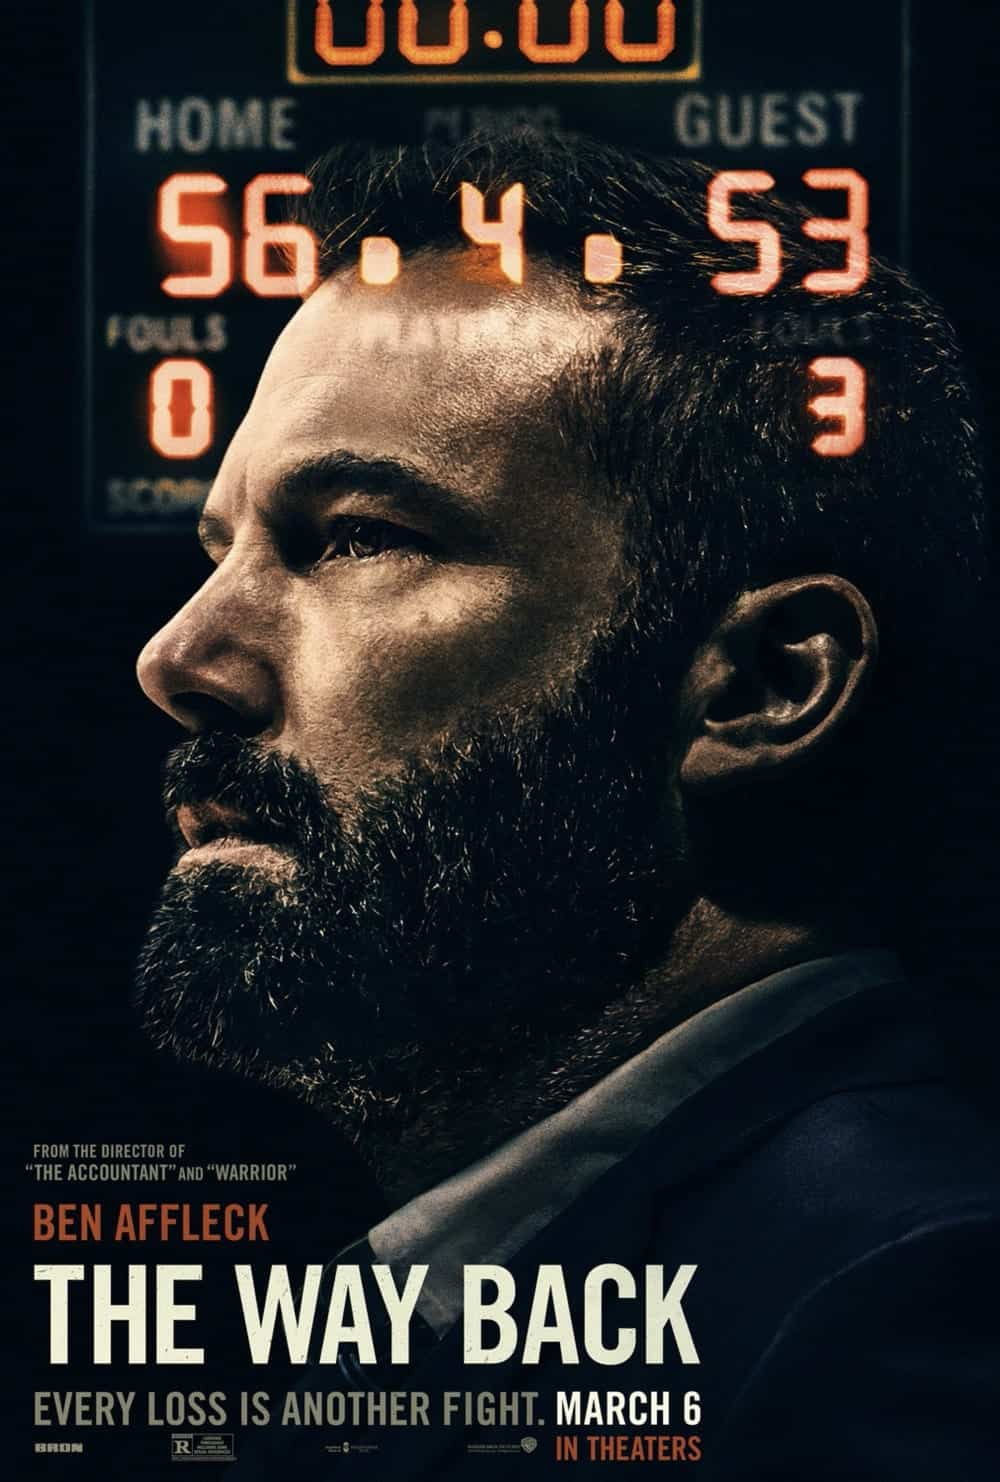 The Way Back Movie Poster Ben Affleck